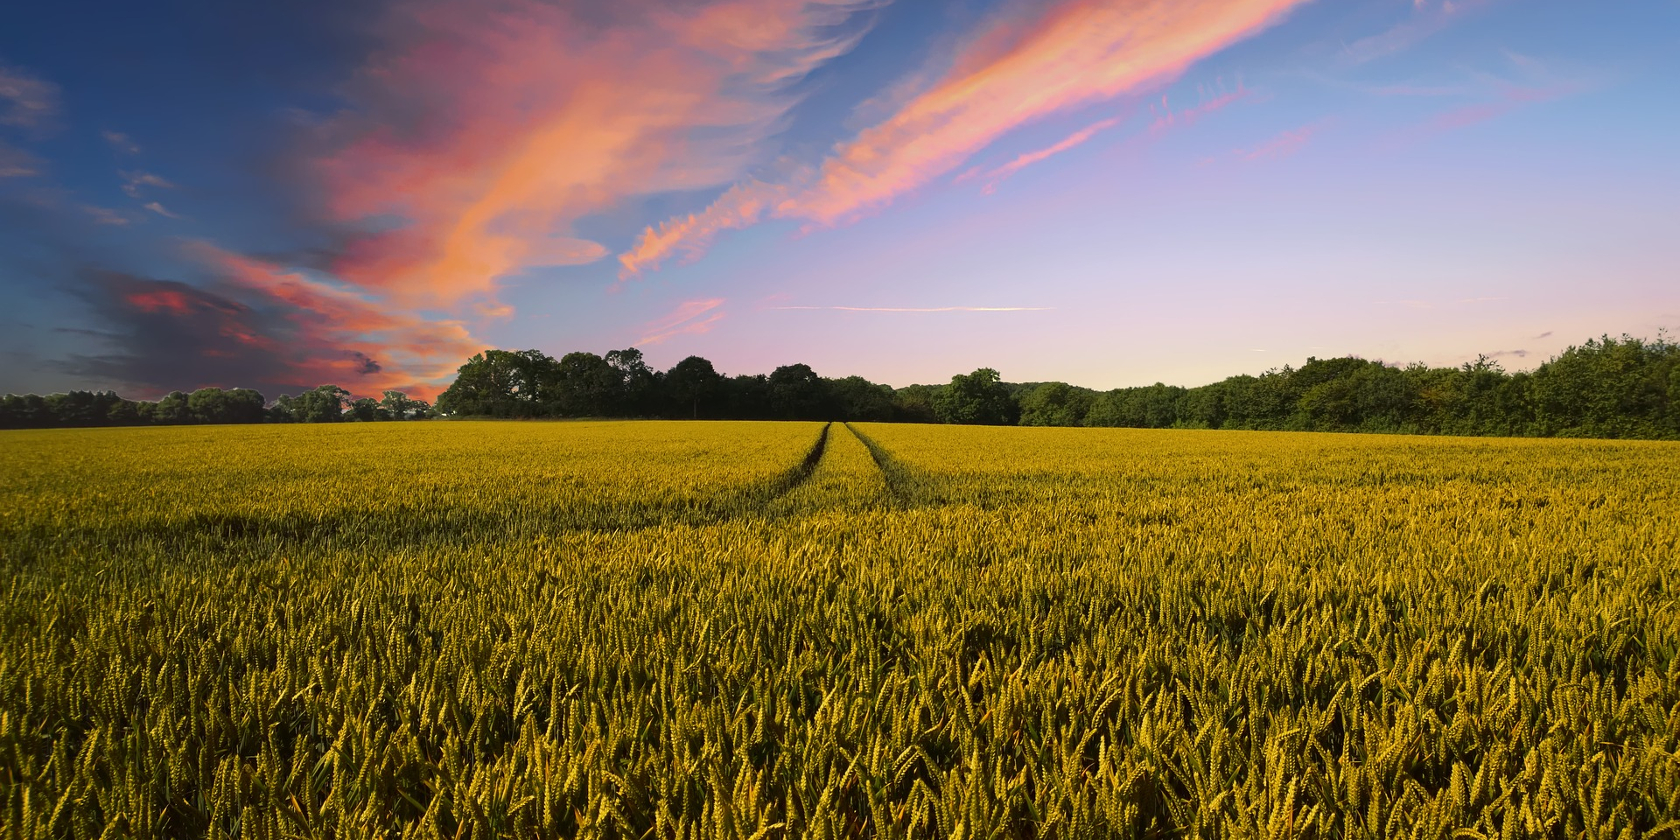 ISK Accelerates Market Development for Agrochemicals in Asia